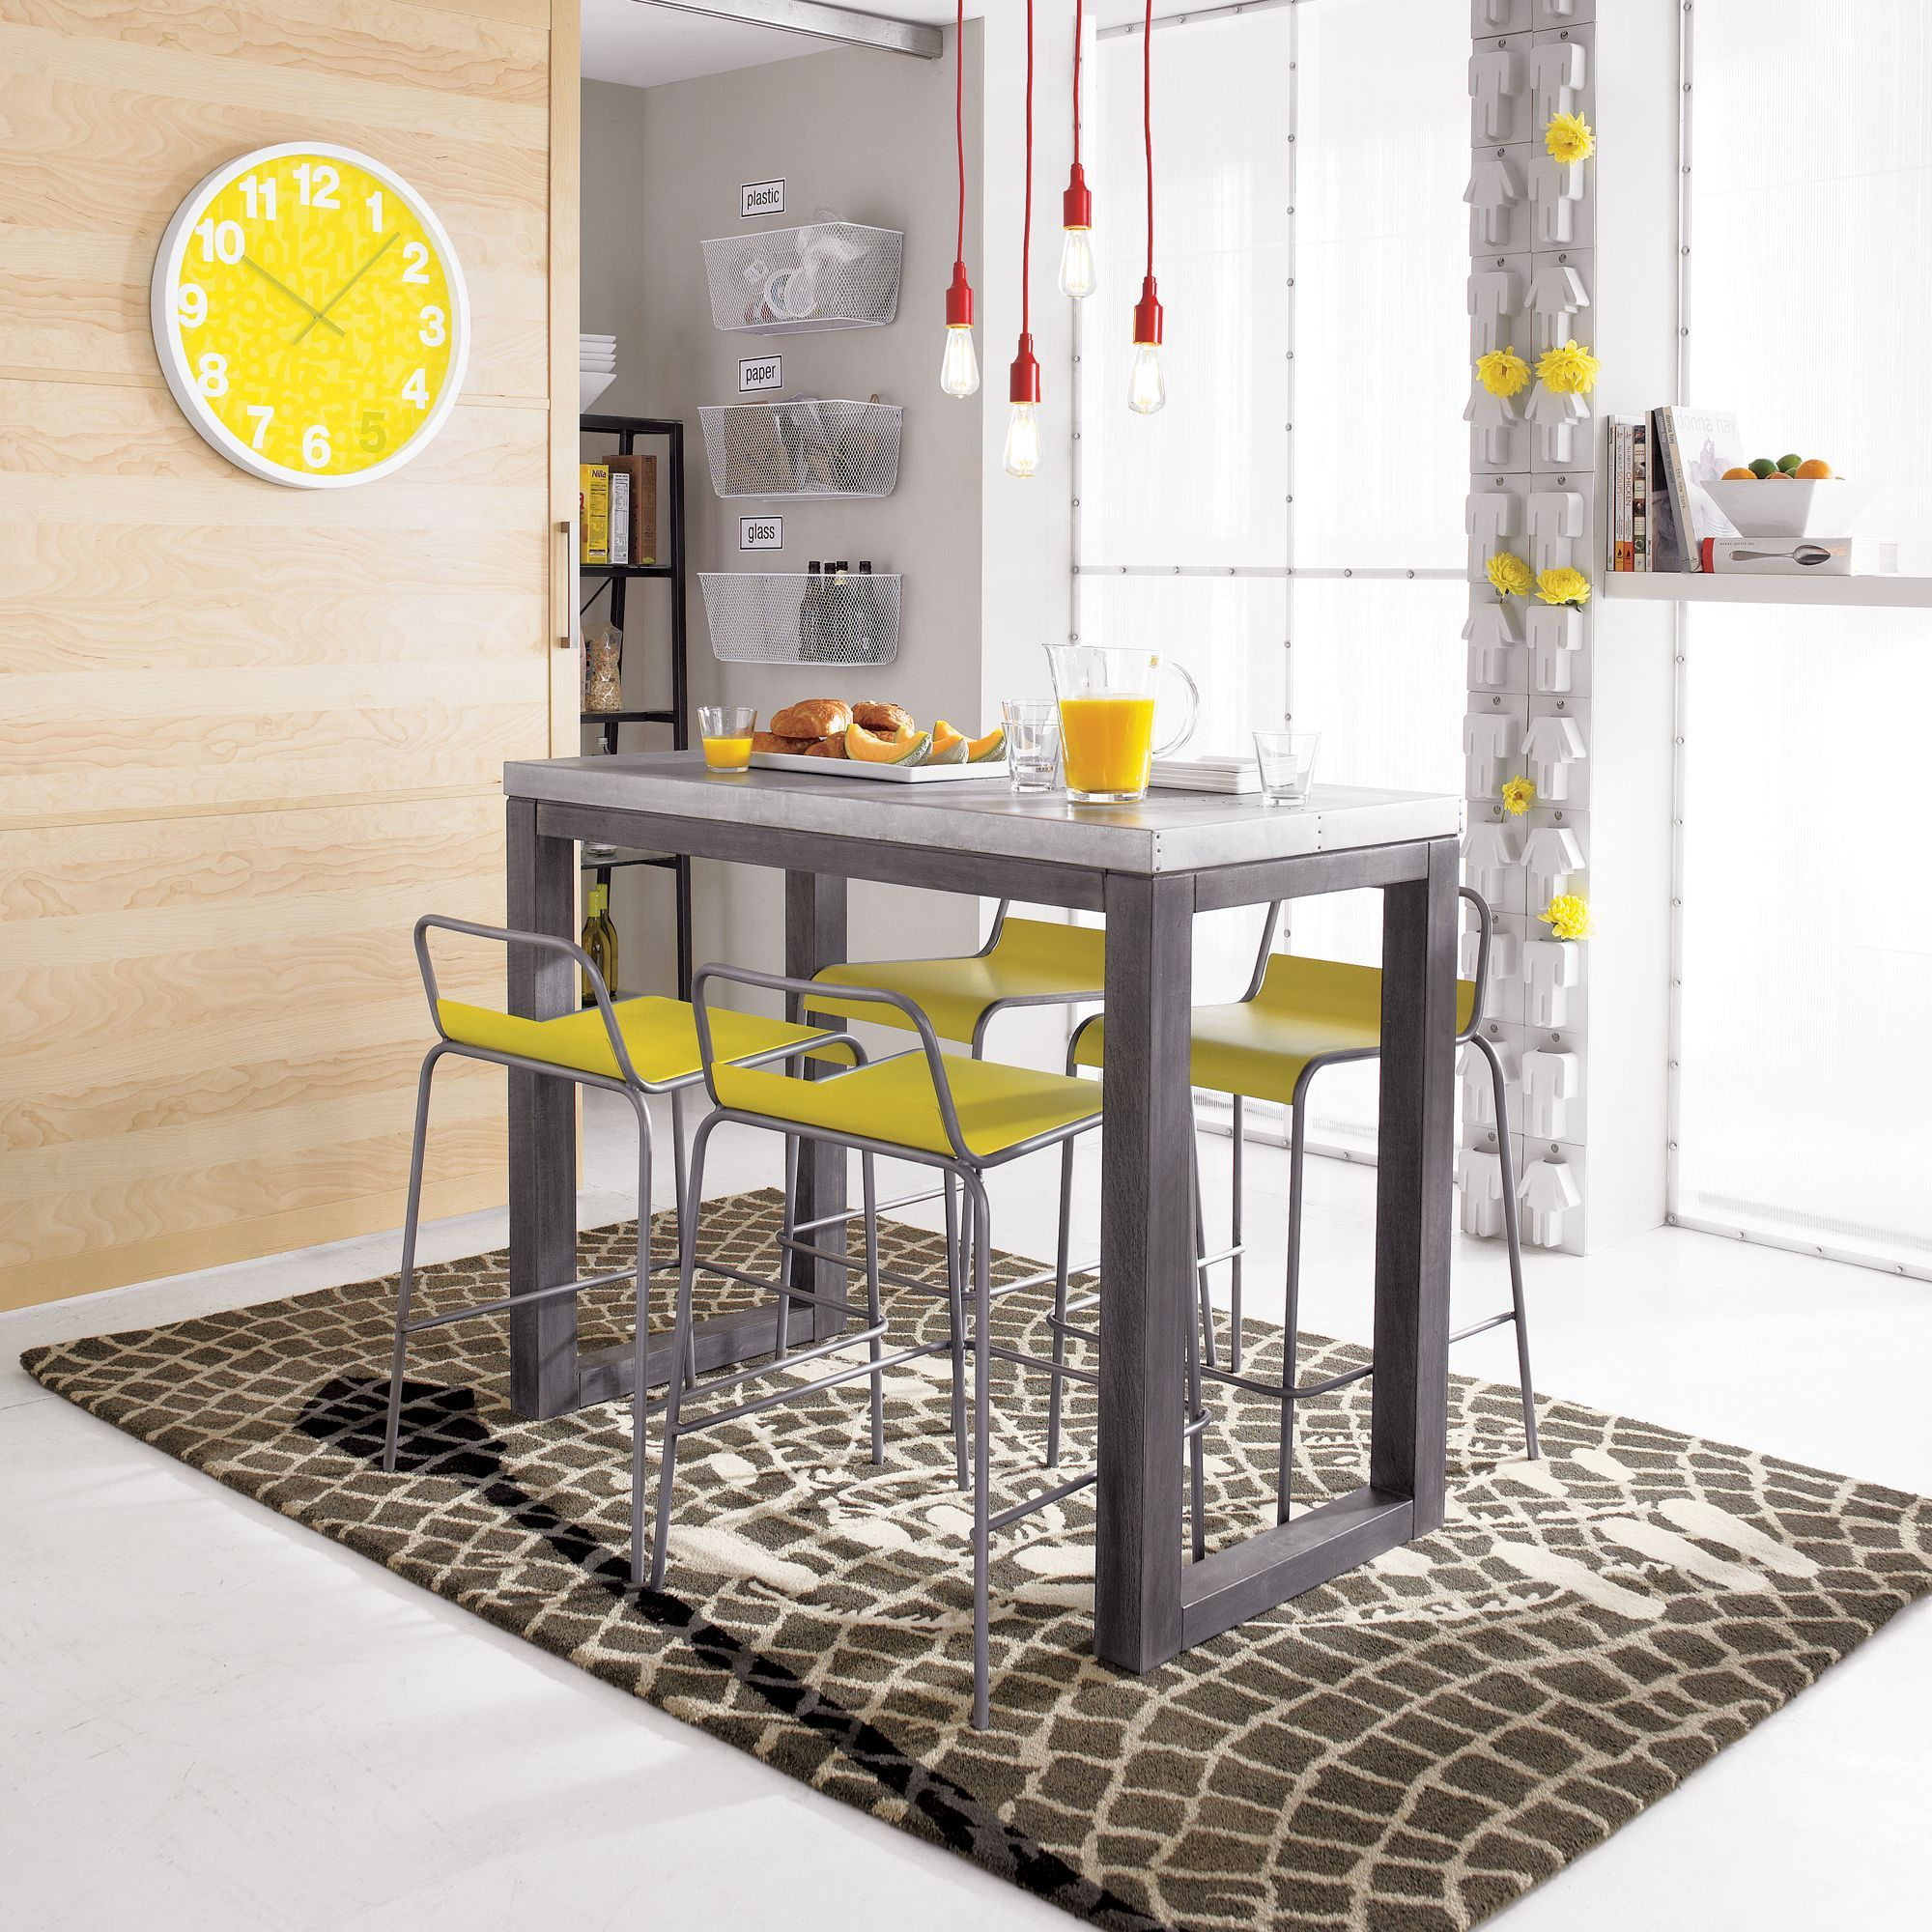 Stern 37 High Counter Table Modern Dining Table Counter Table Cheap Dining Room Sets